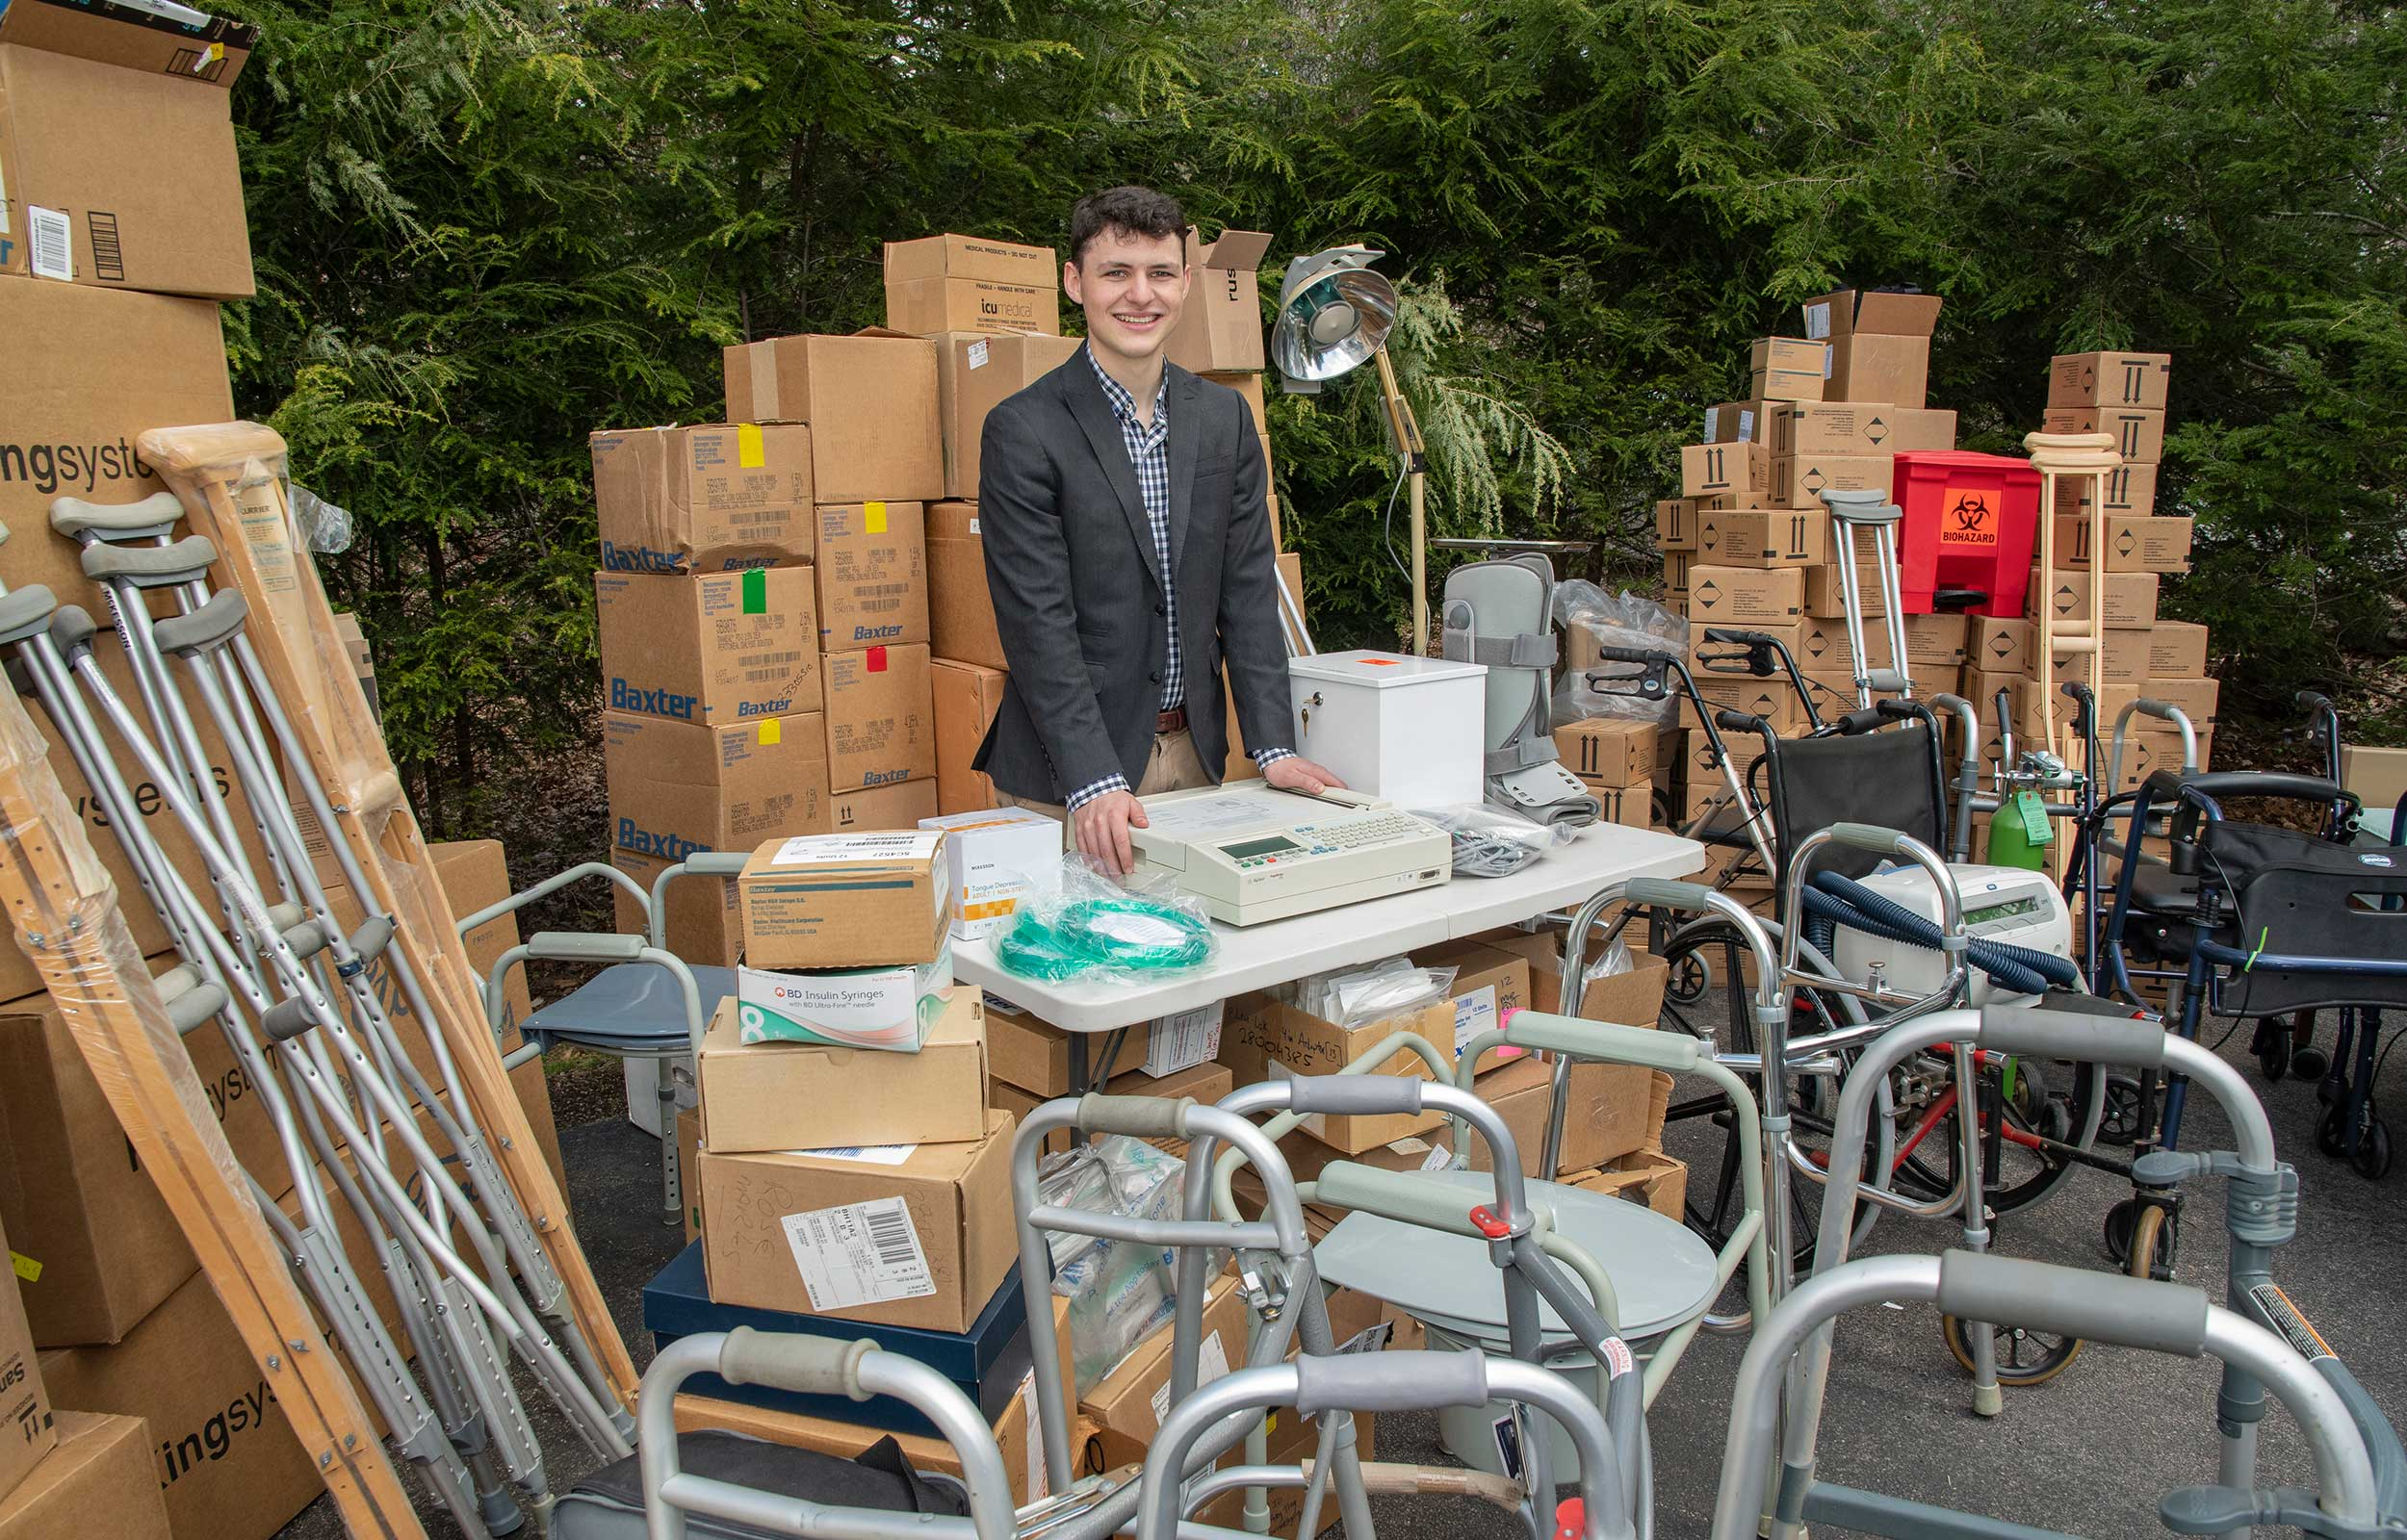 Thomas Bonneau surrounded by some of the medical supplies he has collected to be donated to those in need